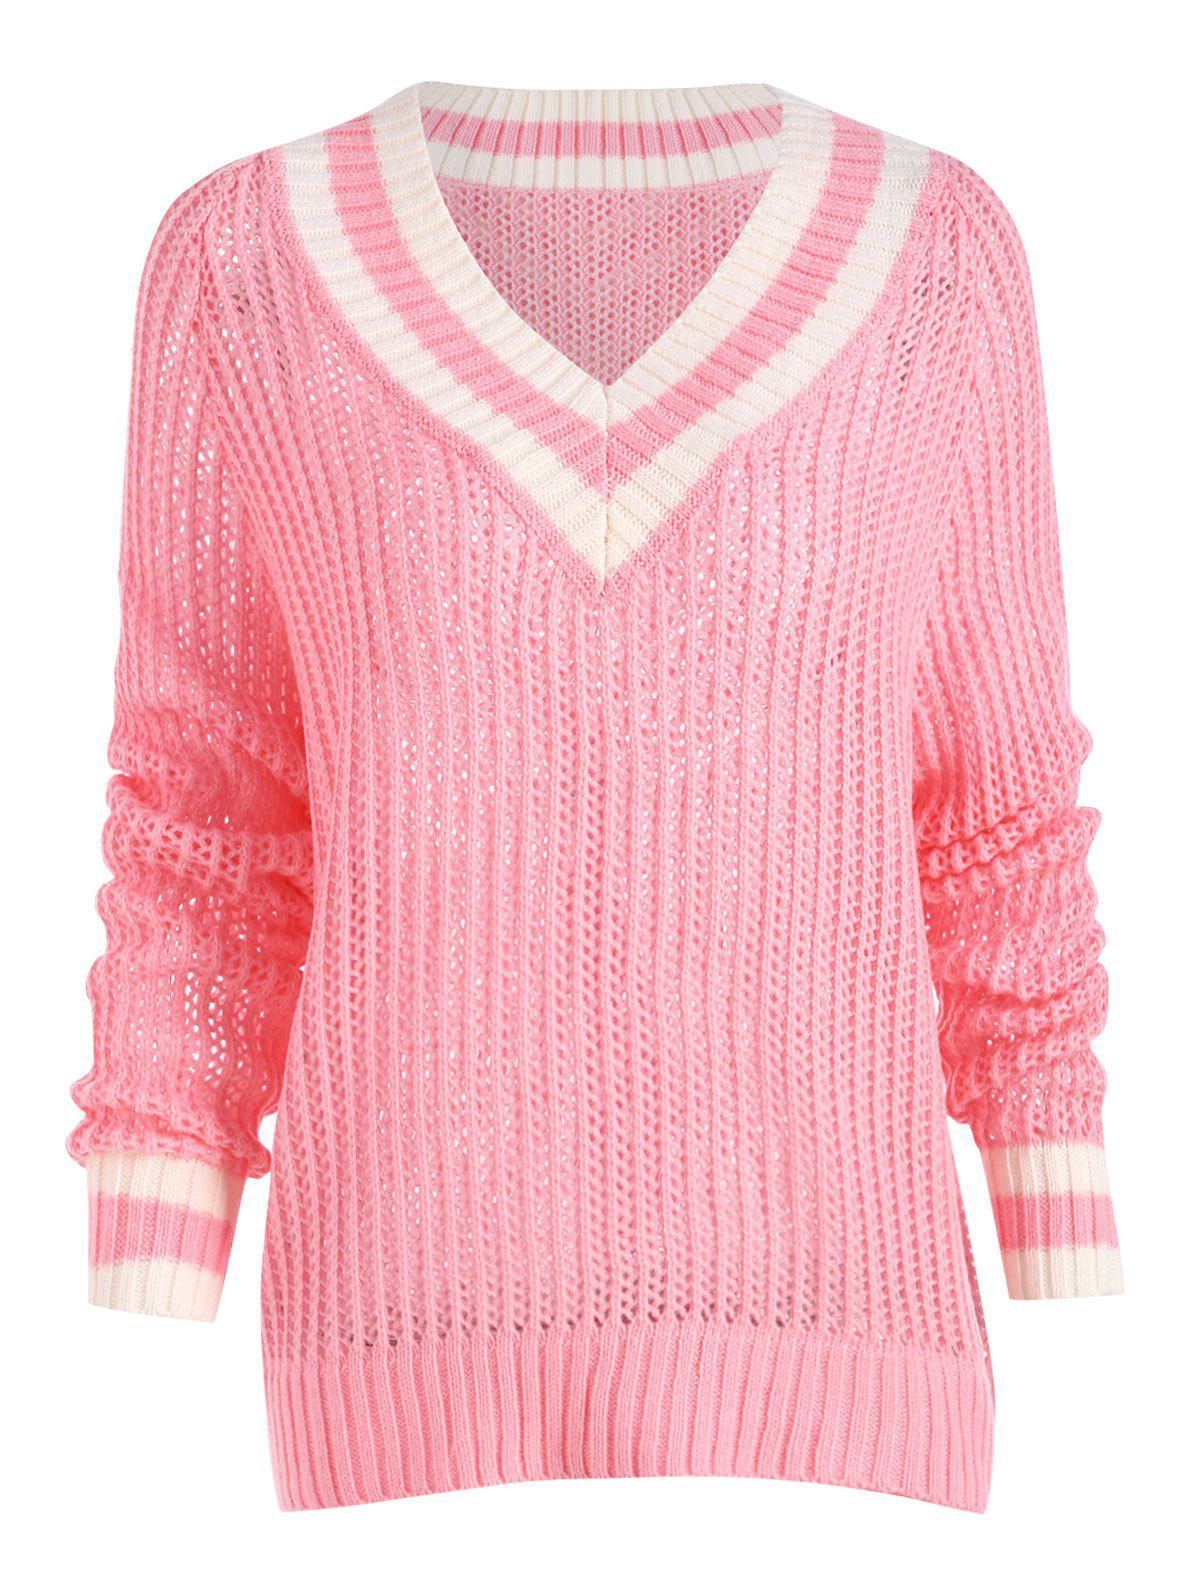 Chunky Knit High Low Plus Size Tennis SweaterWOMEN<br><br>Size: 3XL; Color: PINK; Type: Pullovers; Material: Cotton,Polyester; Sleeve Length: Full; Collar: V-Neck; Style: Fashion; Season: Fall,Winter; Pattern Type: Striped; Weight: 0.4500kg; Package Contents: 1 x Sweater;